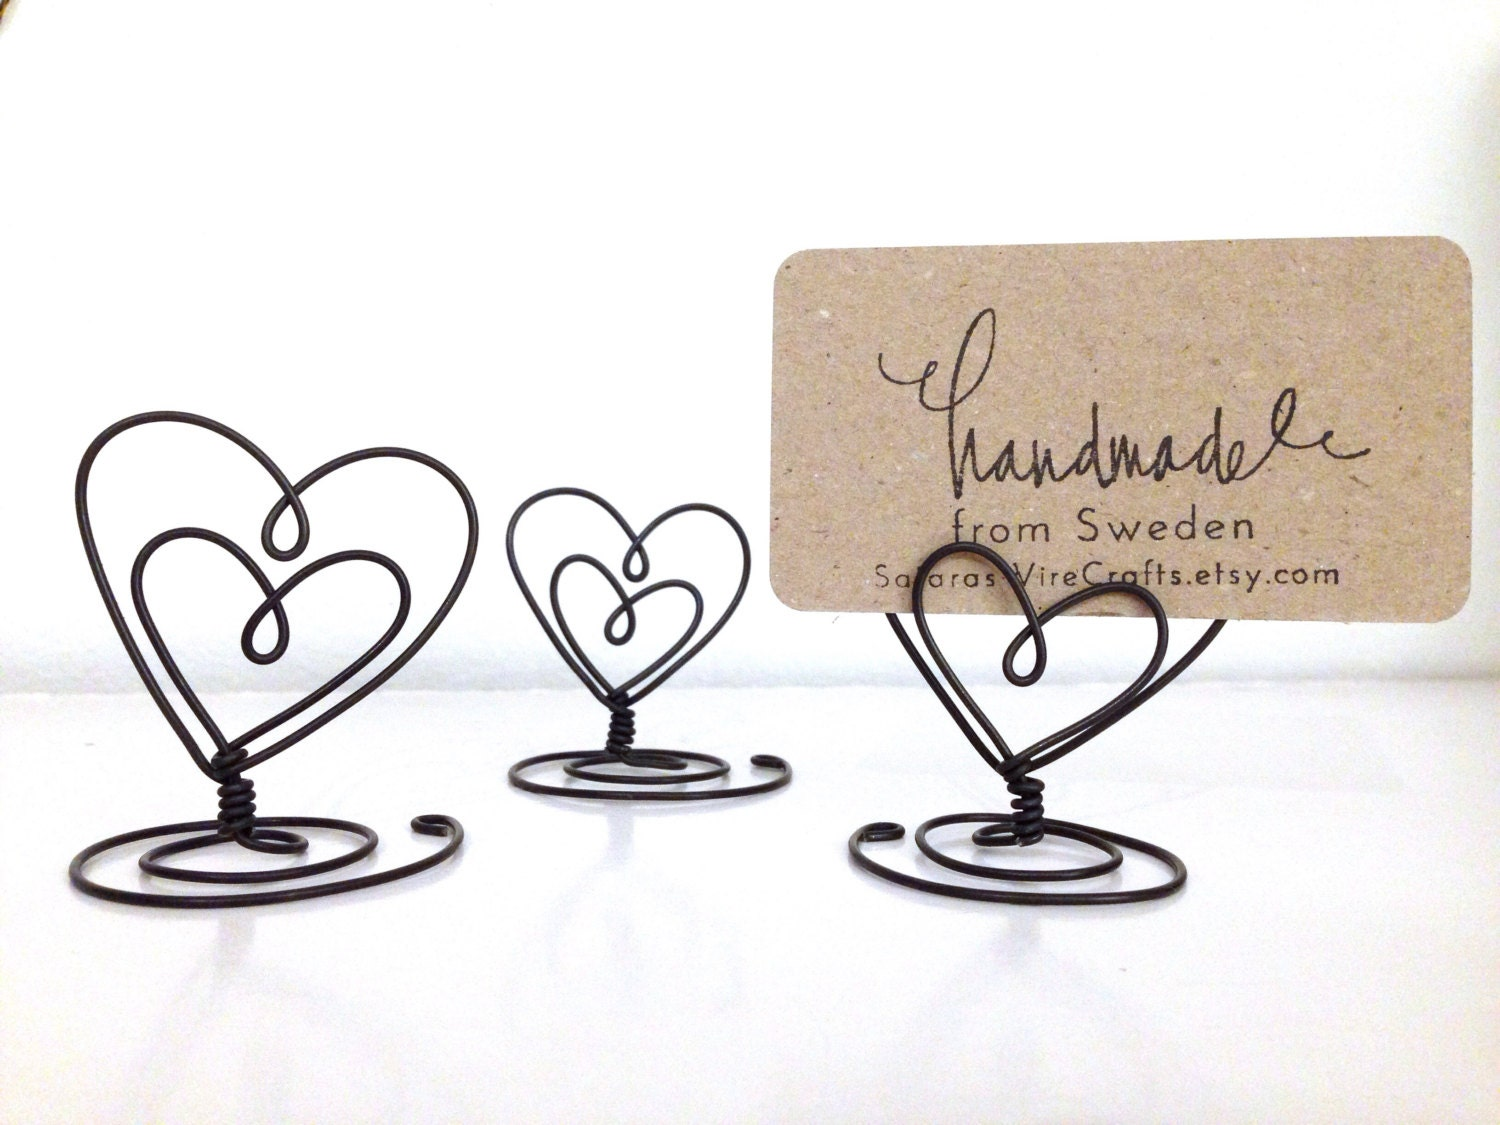 10 Wire Holder Heart Shaped Table Number Card stand NameCard and ...